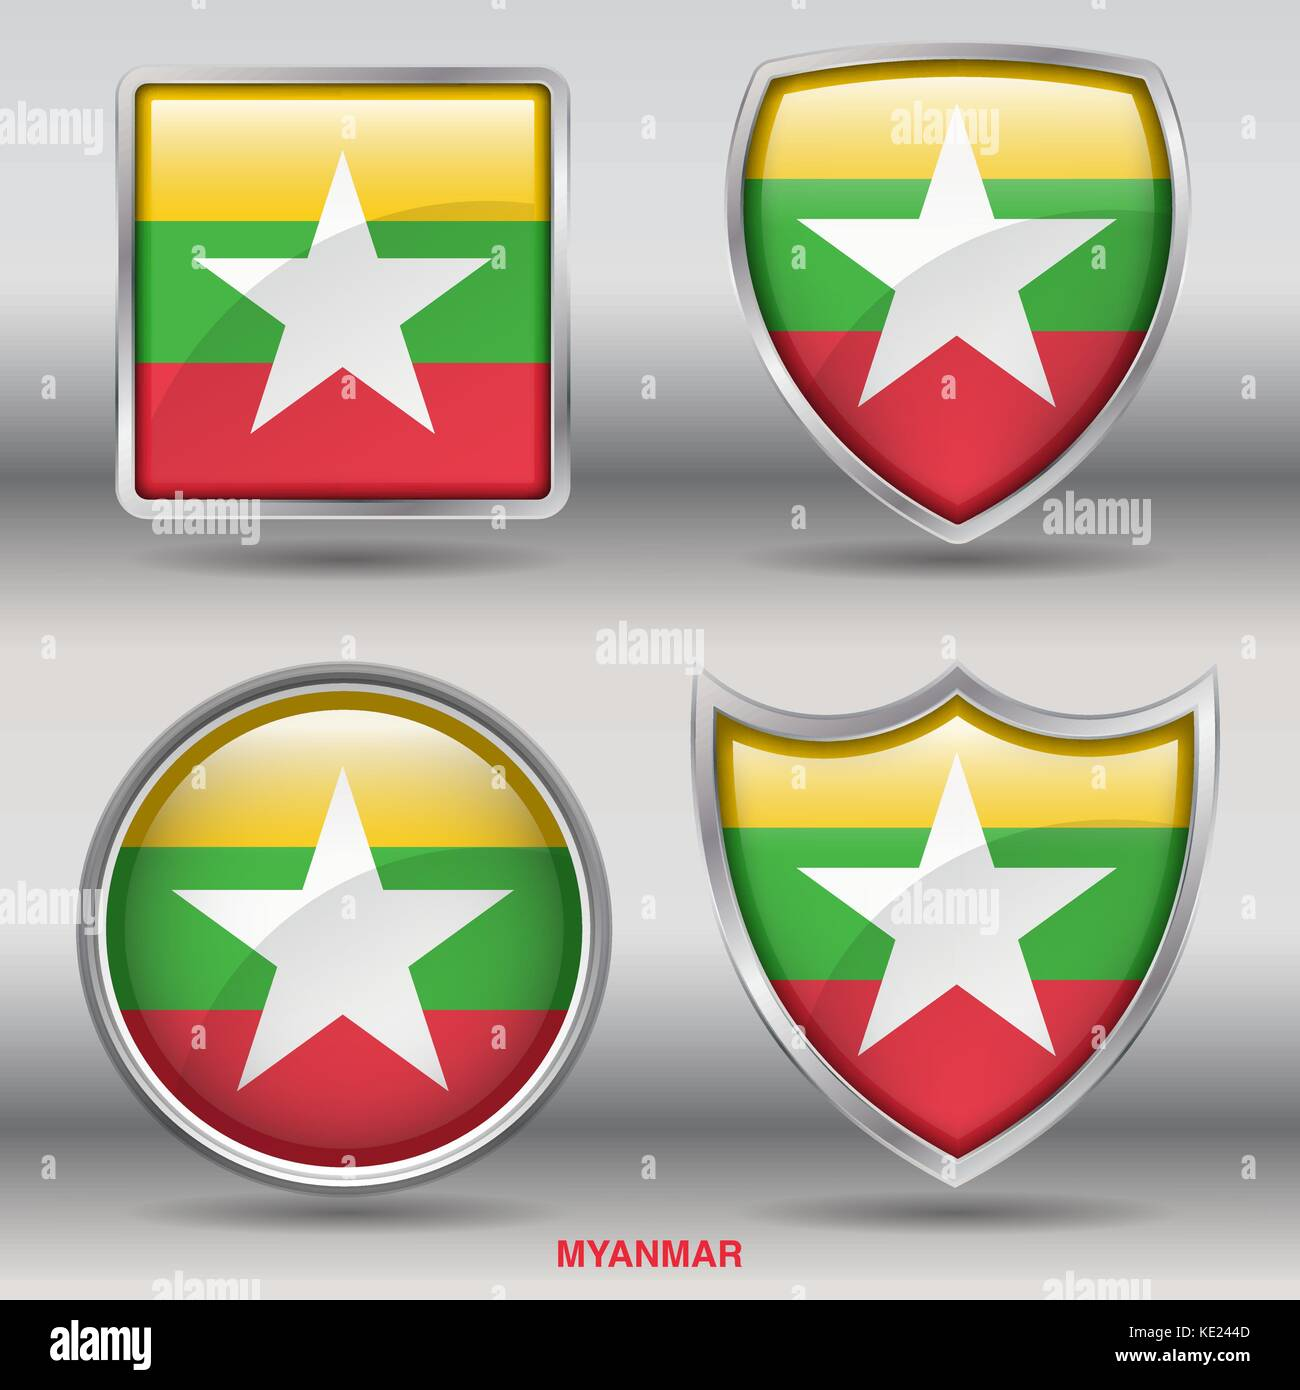 Myanmar Flag - 4 shapes Flags States Country in the World with clipping path - Stock Vector